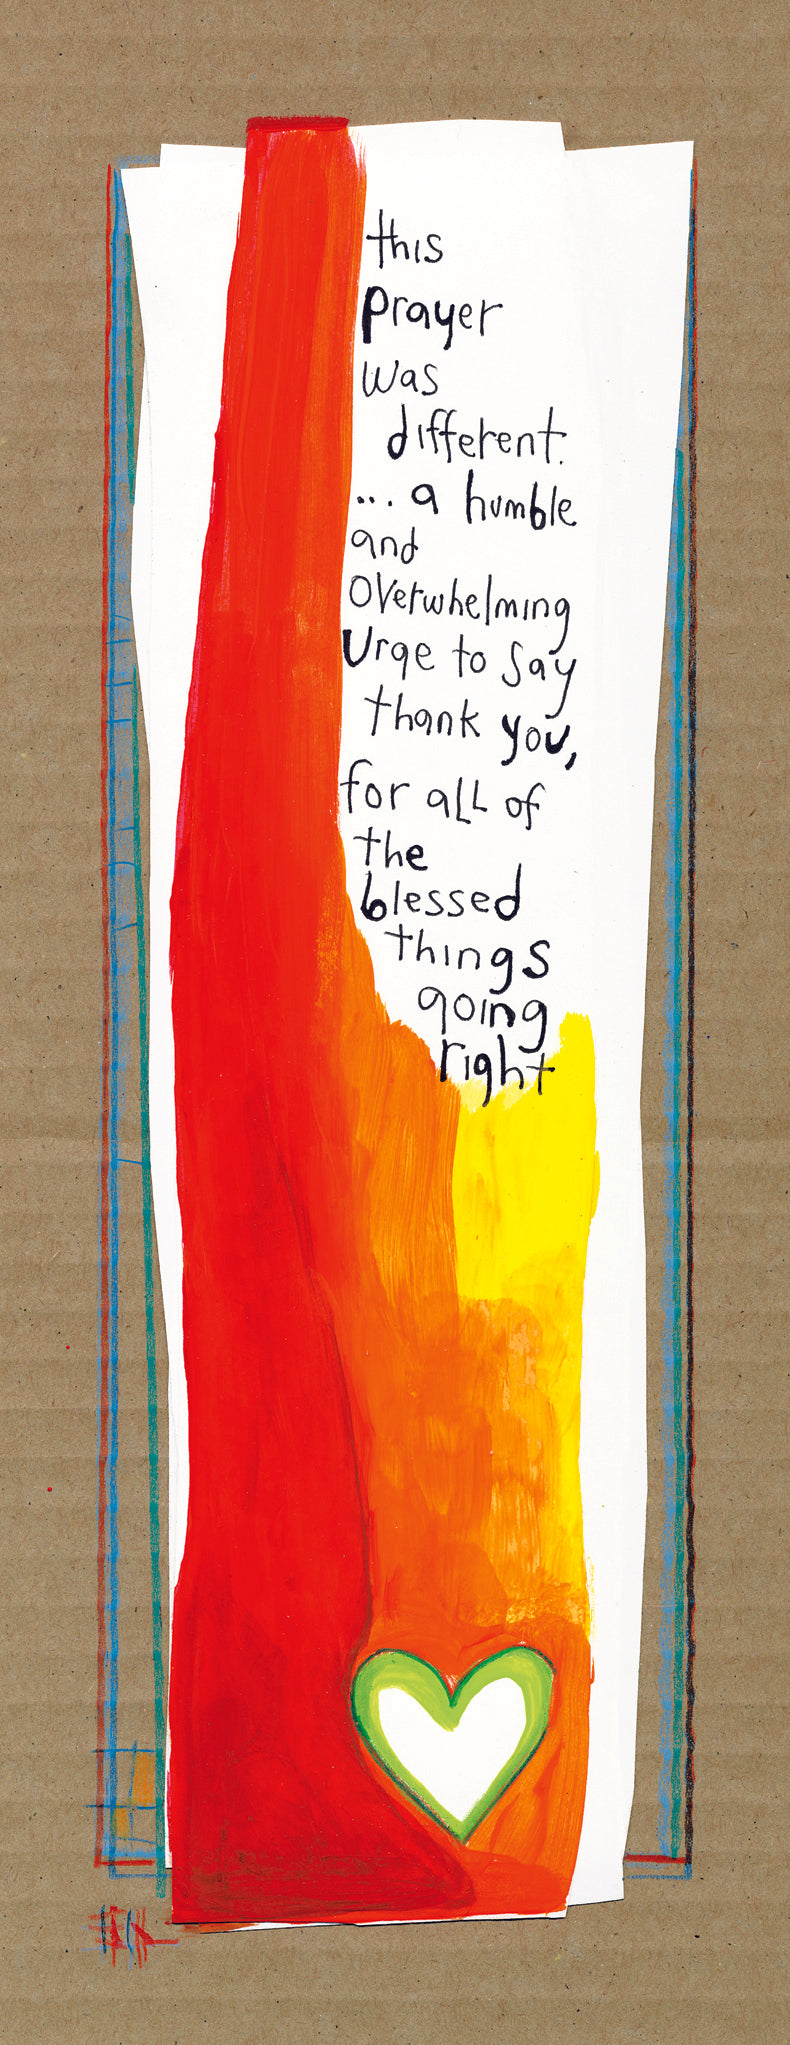 Giving Thanks 7 x 15 Matted Print